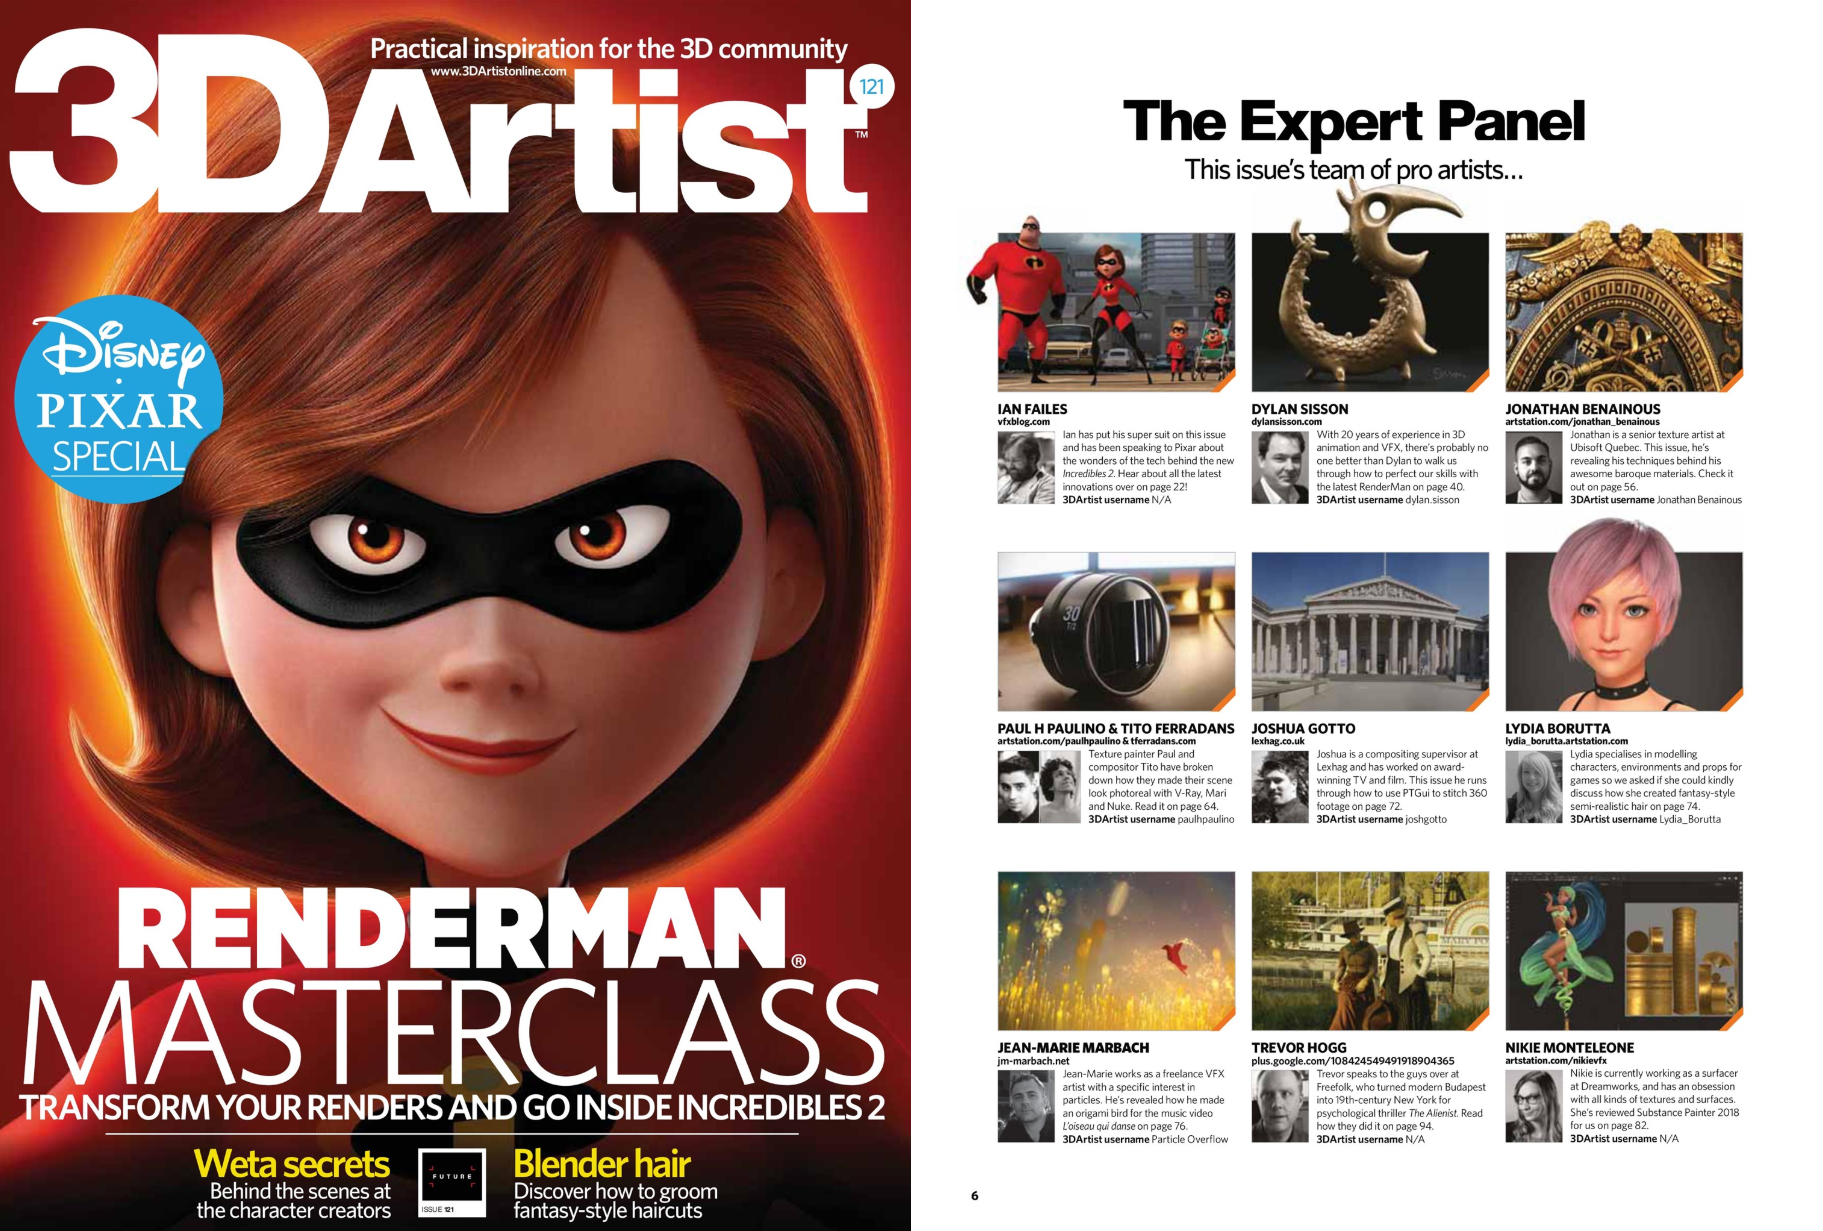 Check out my review for Substance painter 2018 in this INCREDIBLE 3D Artist Magazine, issue 121!